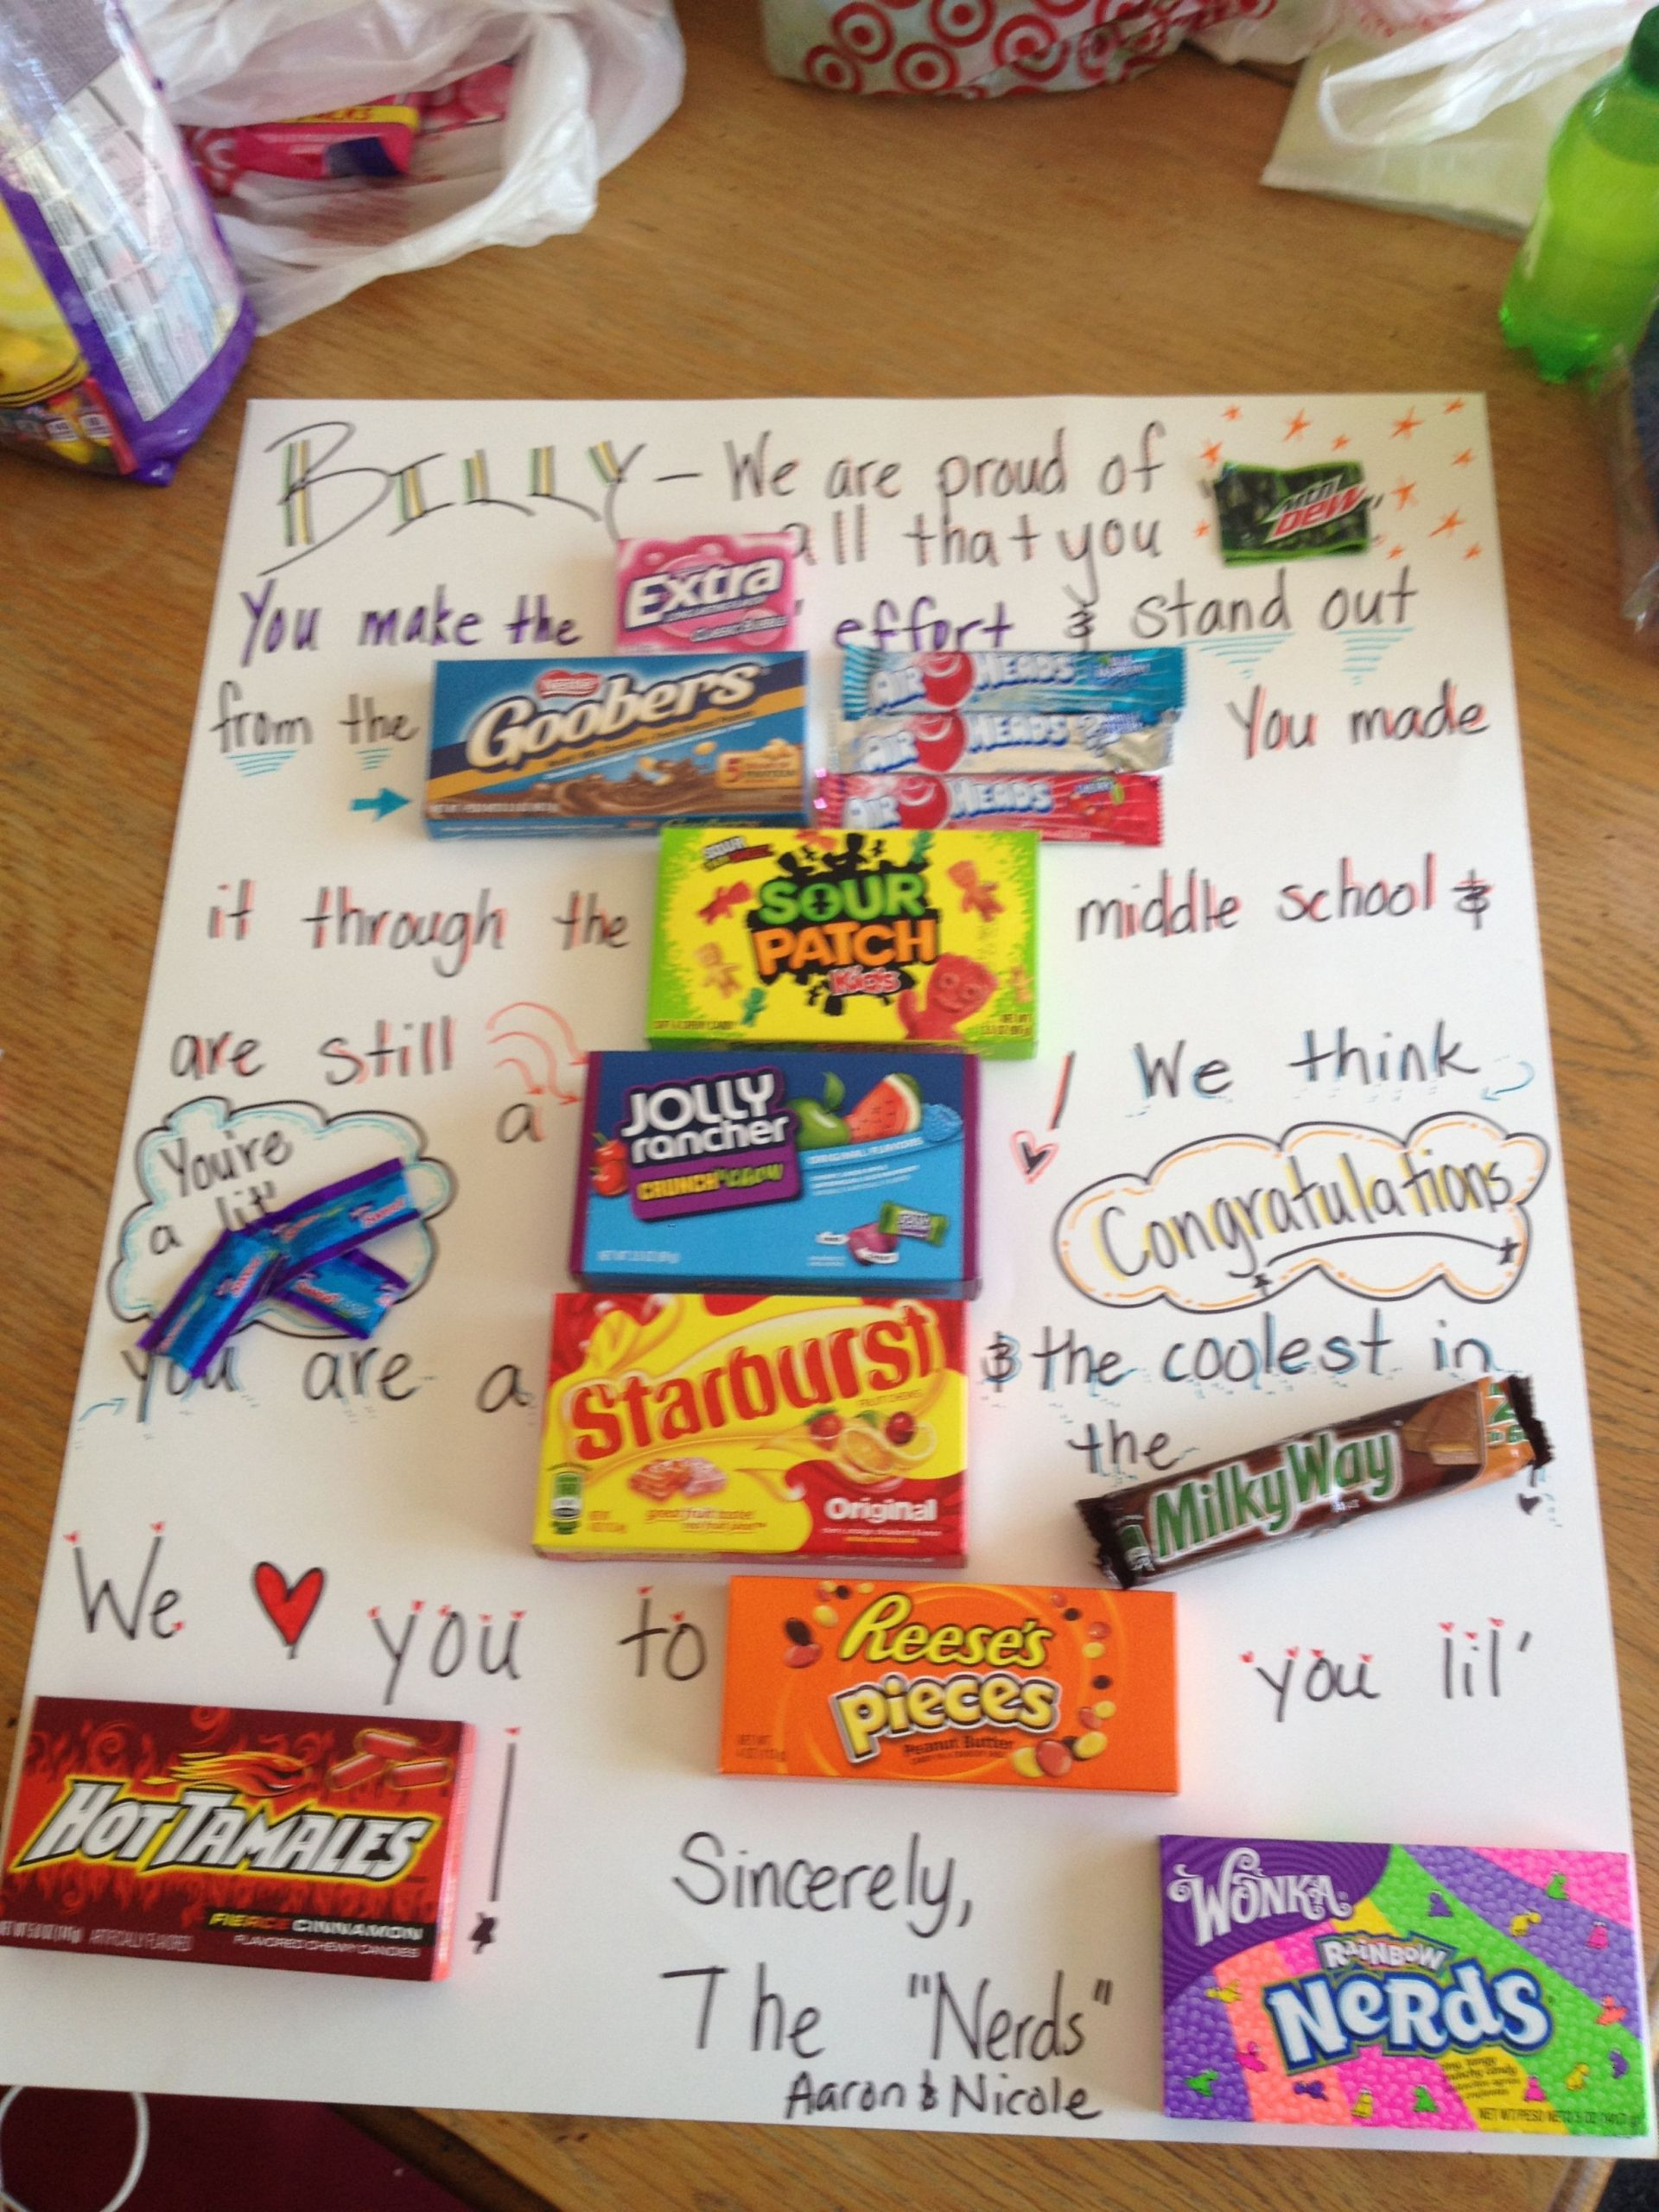 5Th Grade Graduation Gift Ideas For Boys  A candy card for a boy promoting graduating middle school